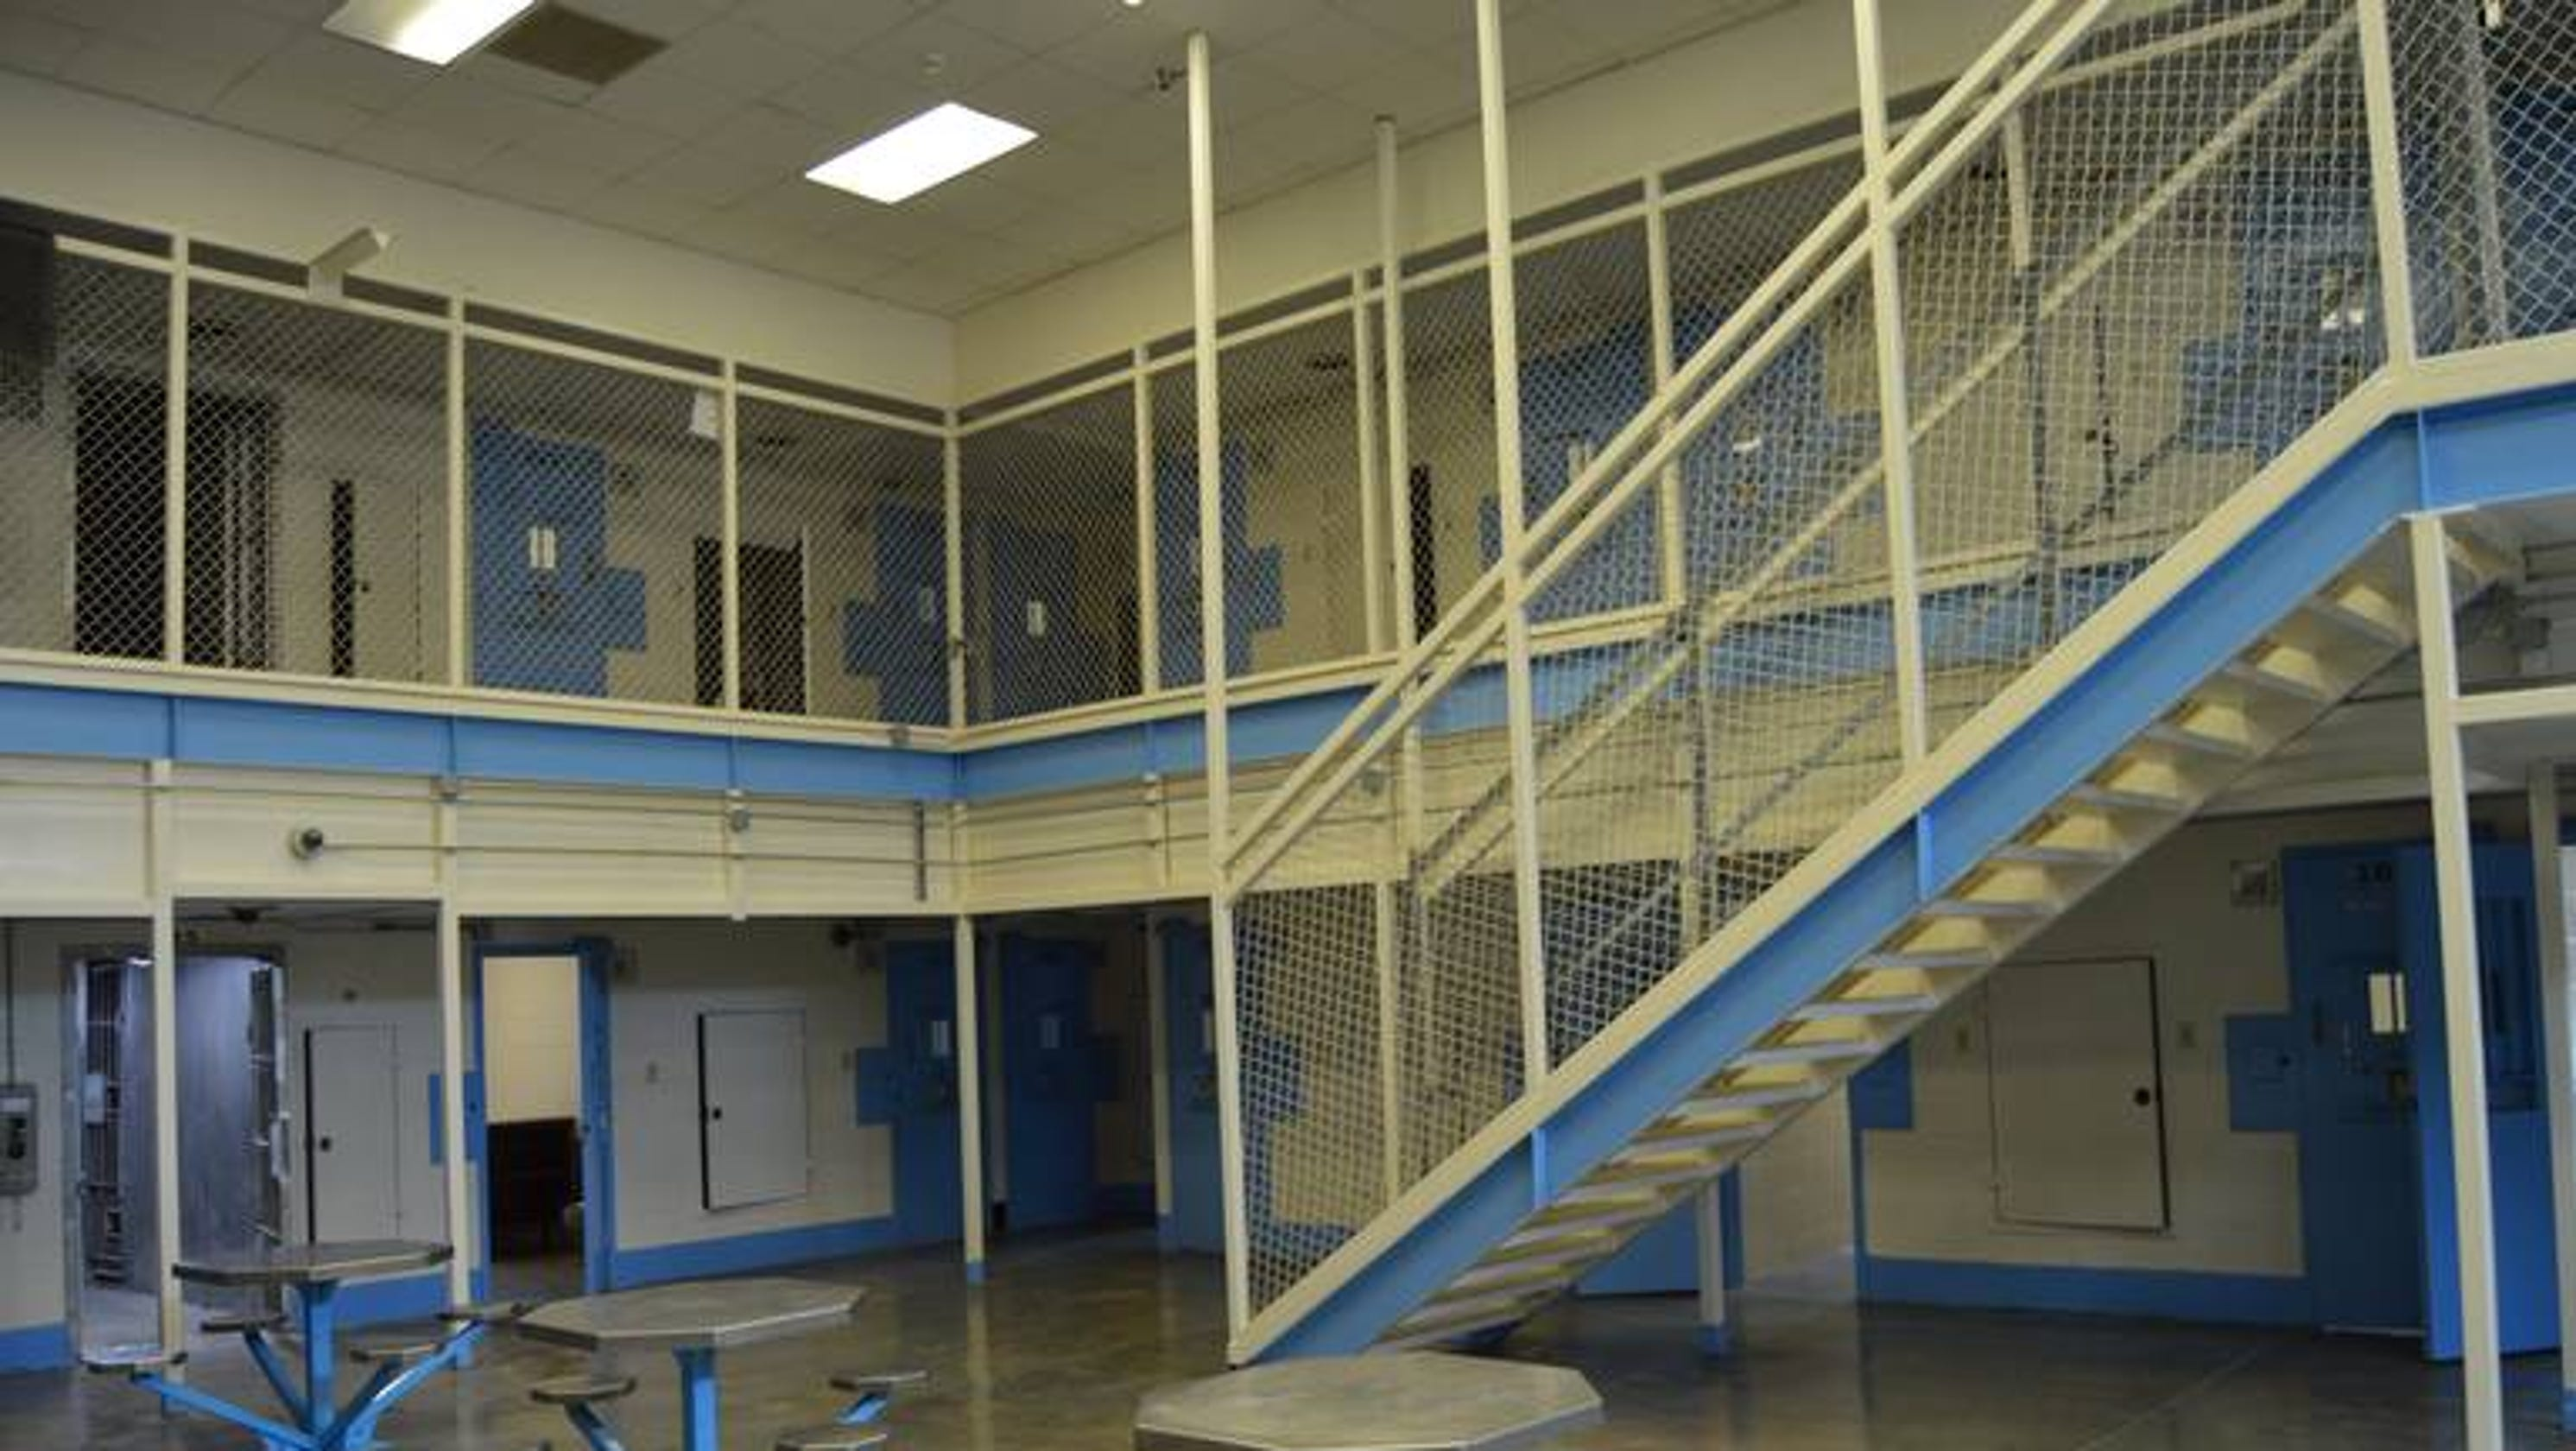 SC death row inmates in new facility after quiet, high security move